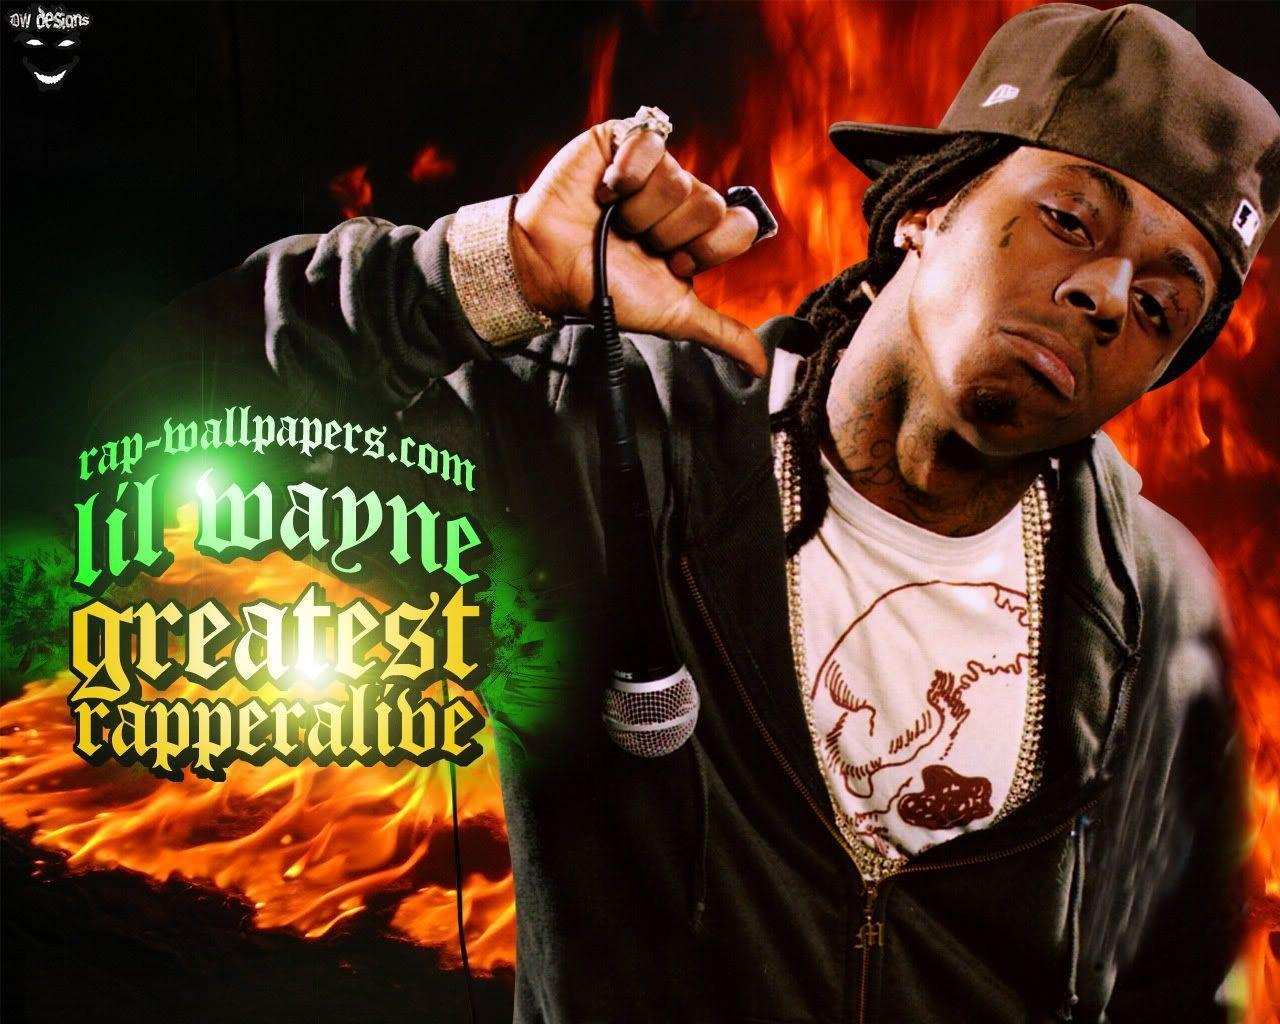 Lil Wayne Greatest Rapper Music Wallpapers